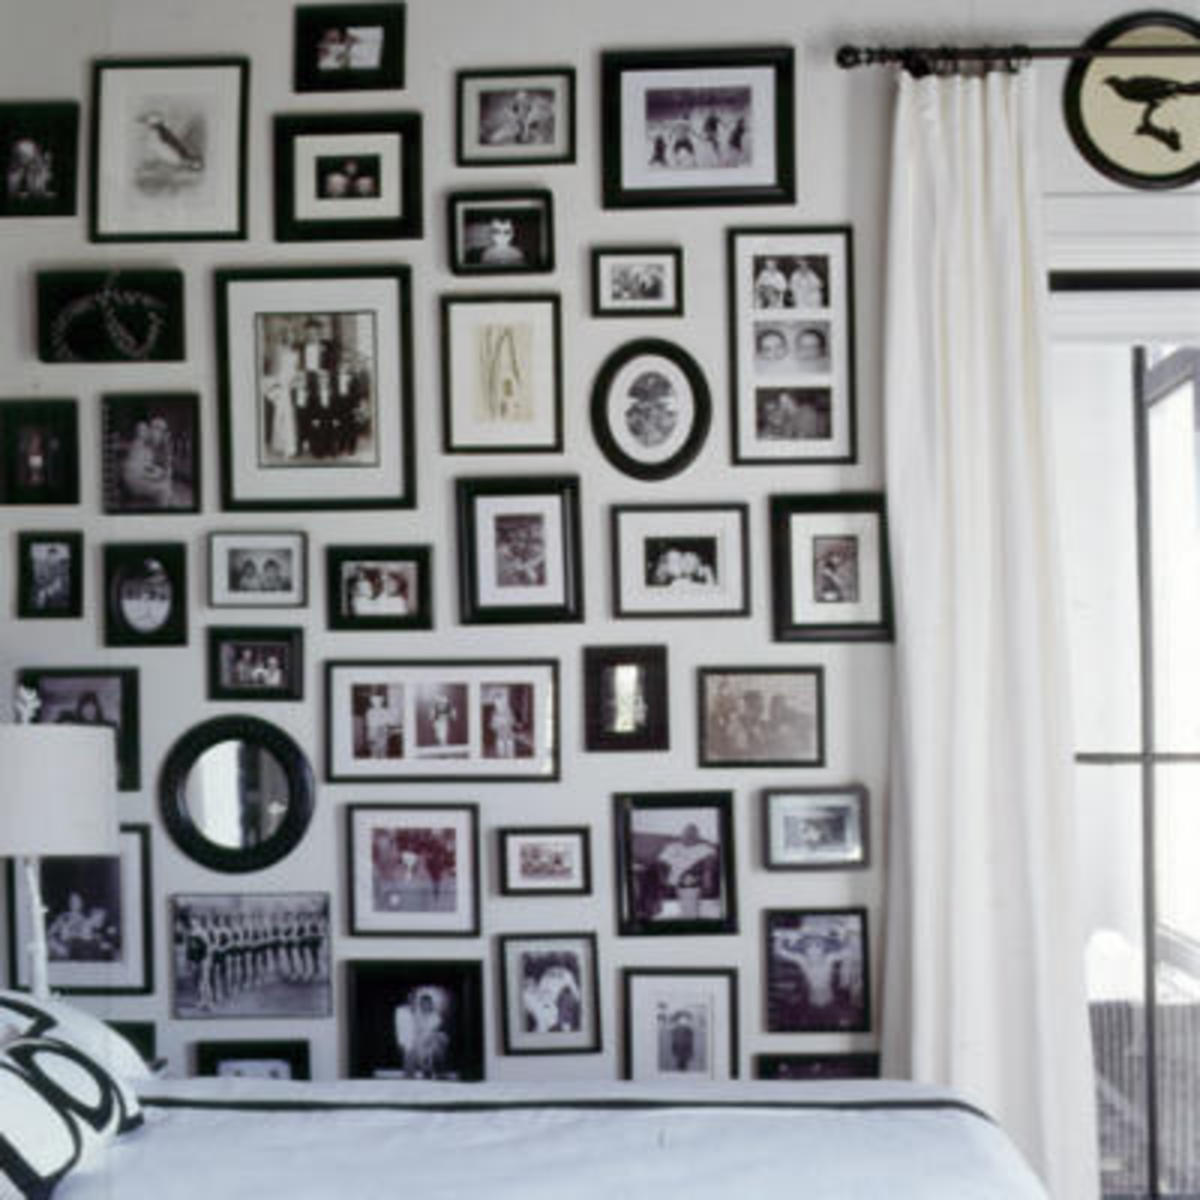 Home Decorating on a Budget: Tips, Ideas and Inspiration